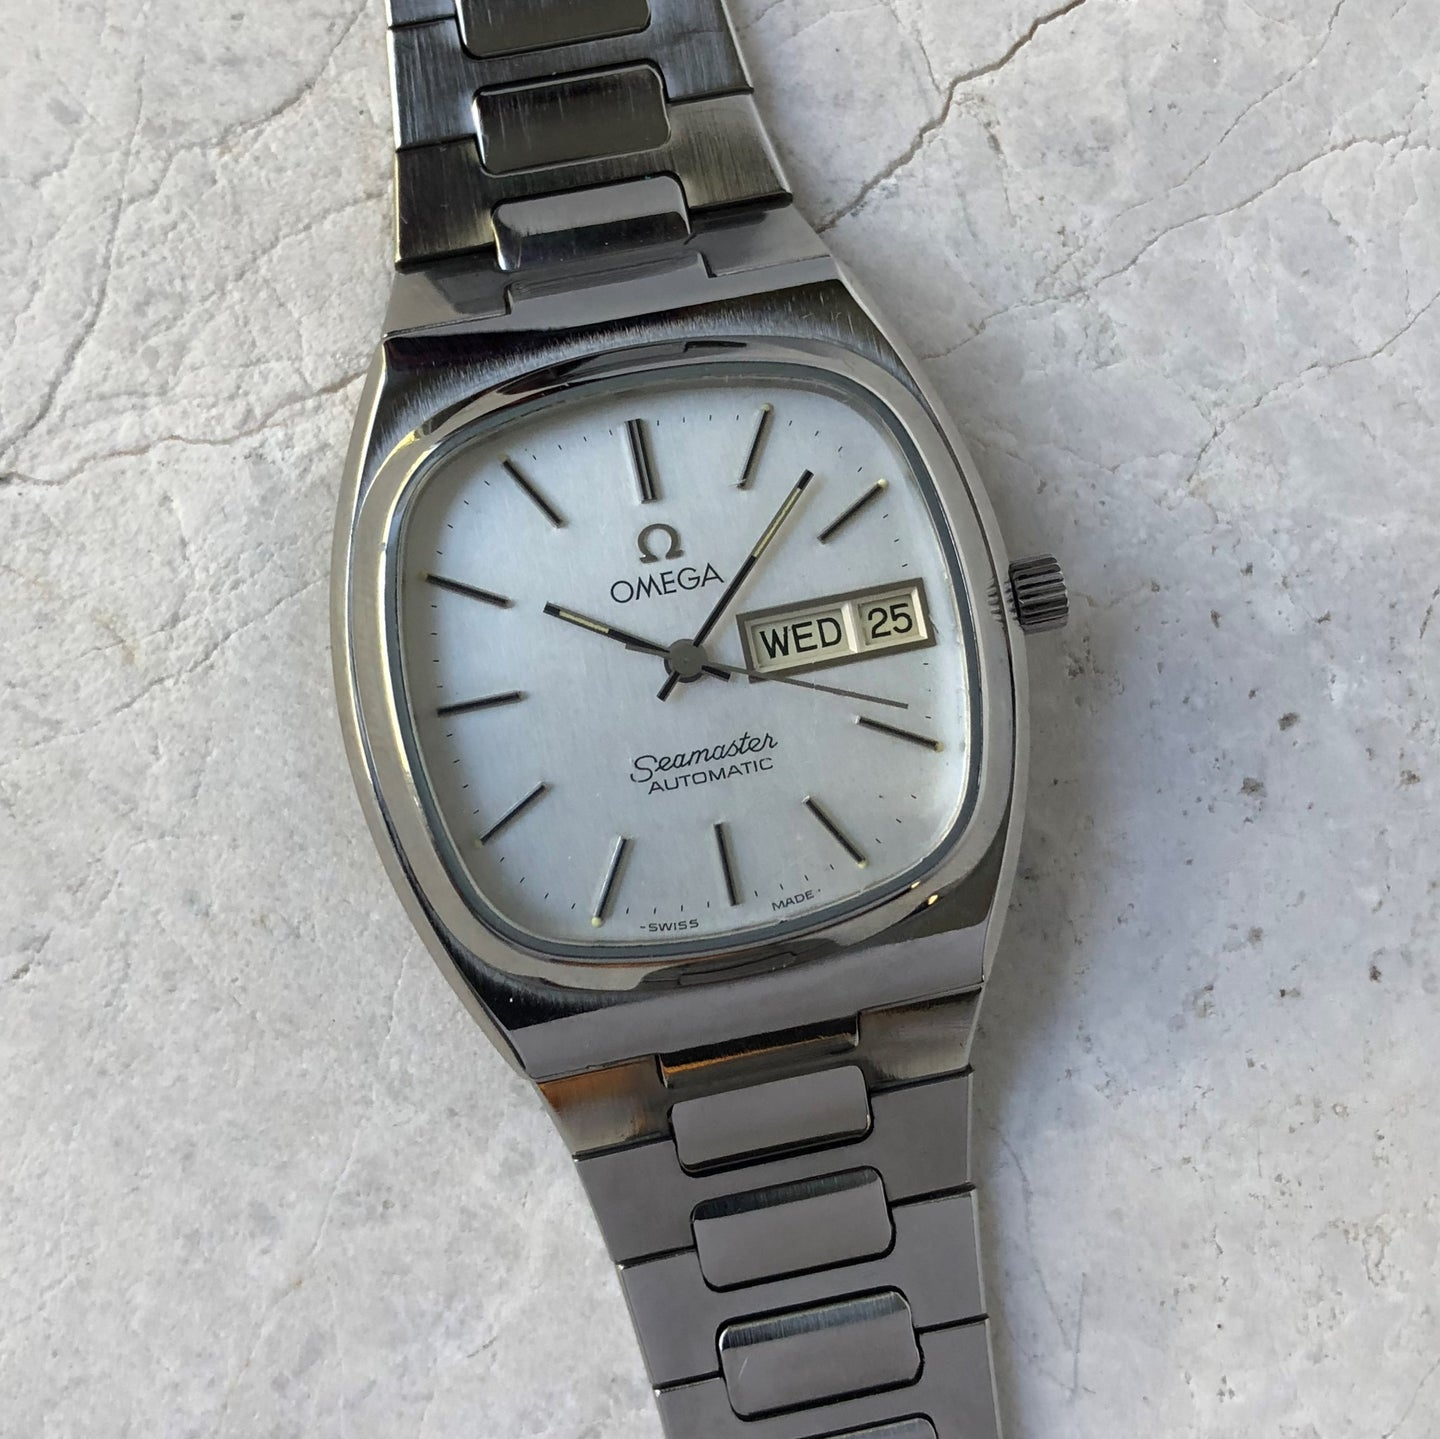 Omega Seamaster watch from the 1970's